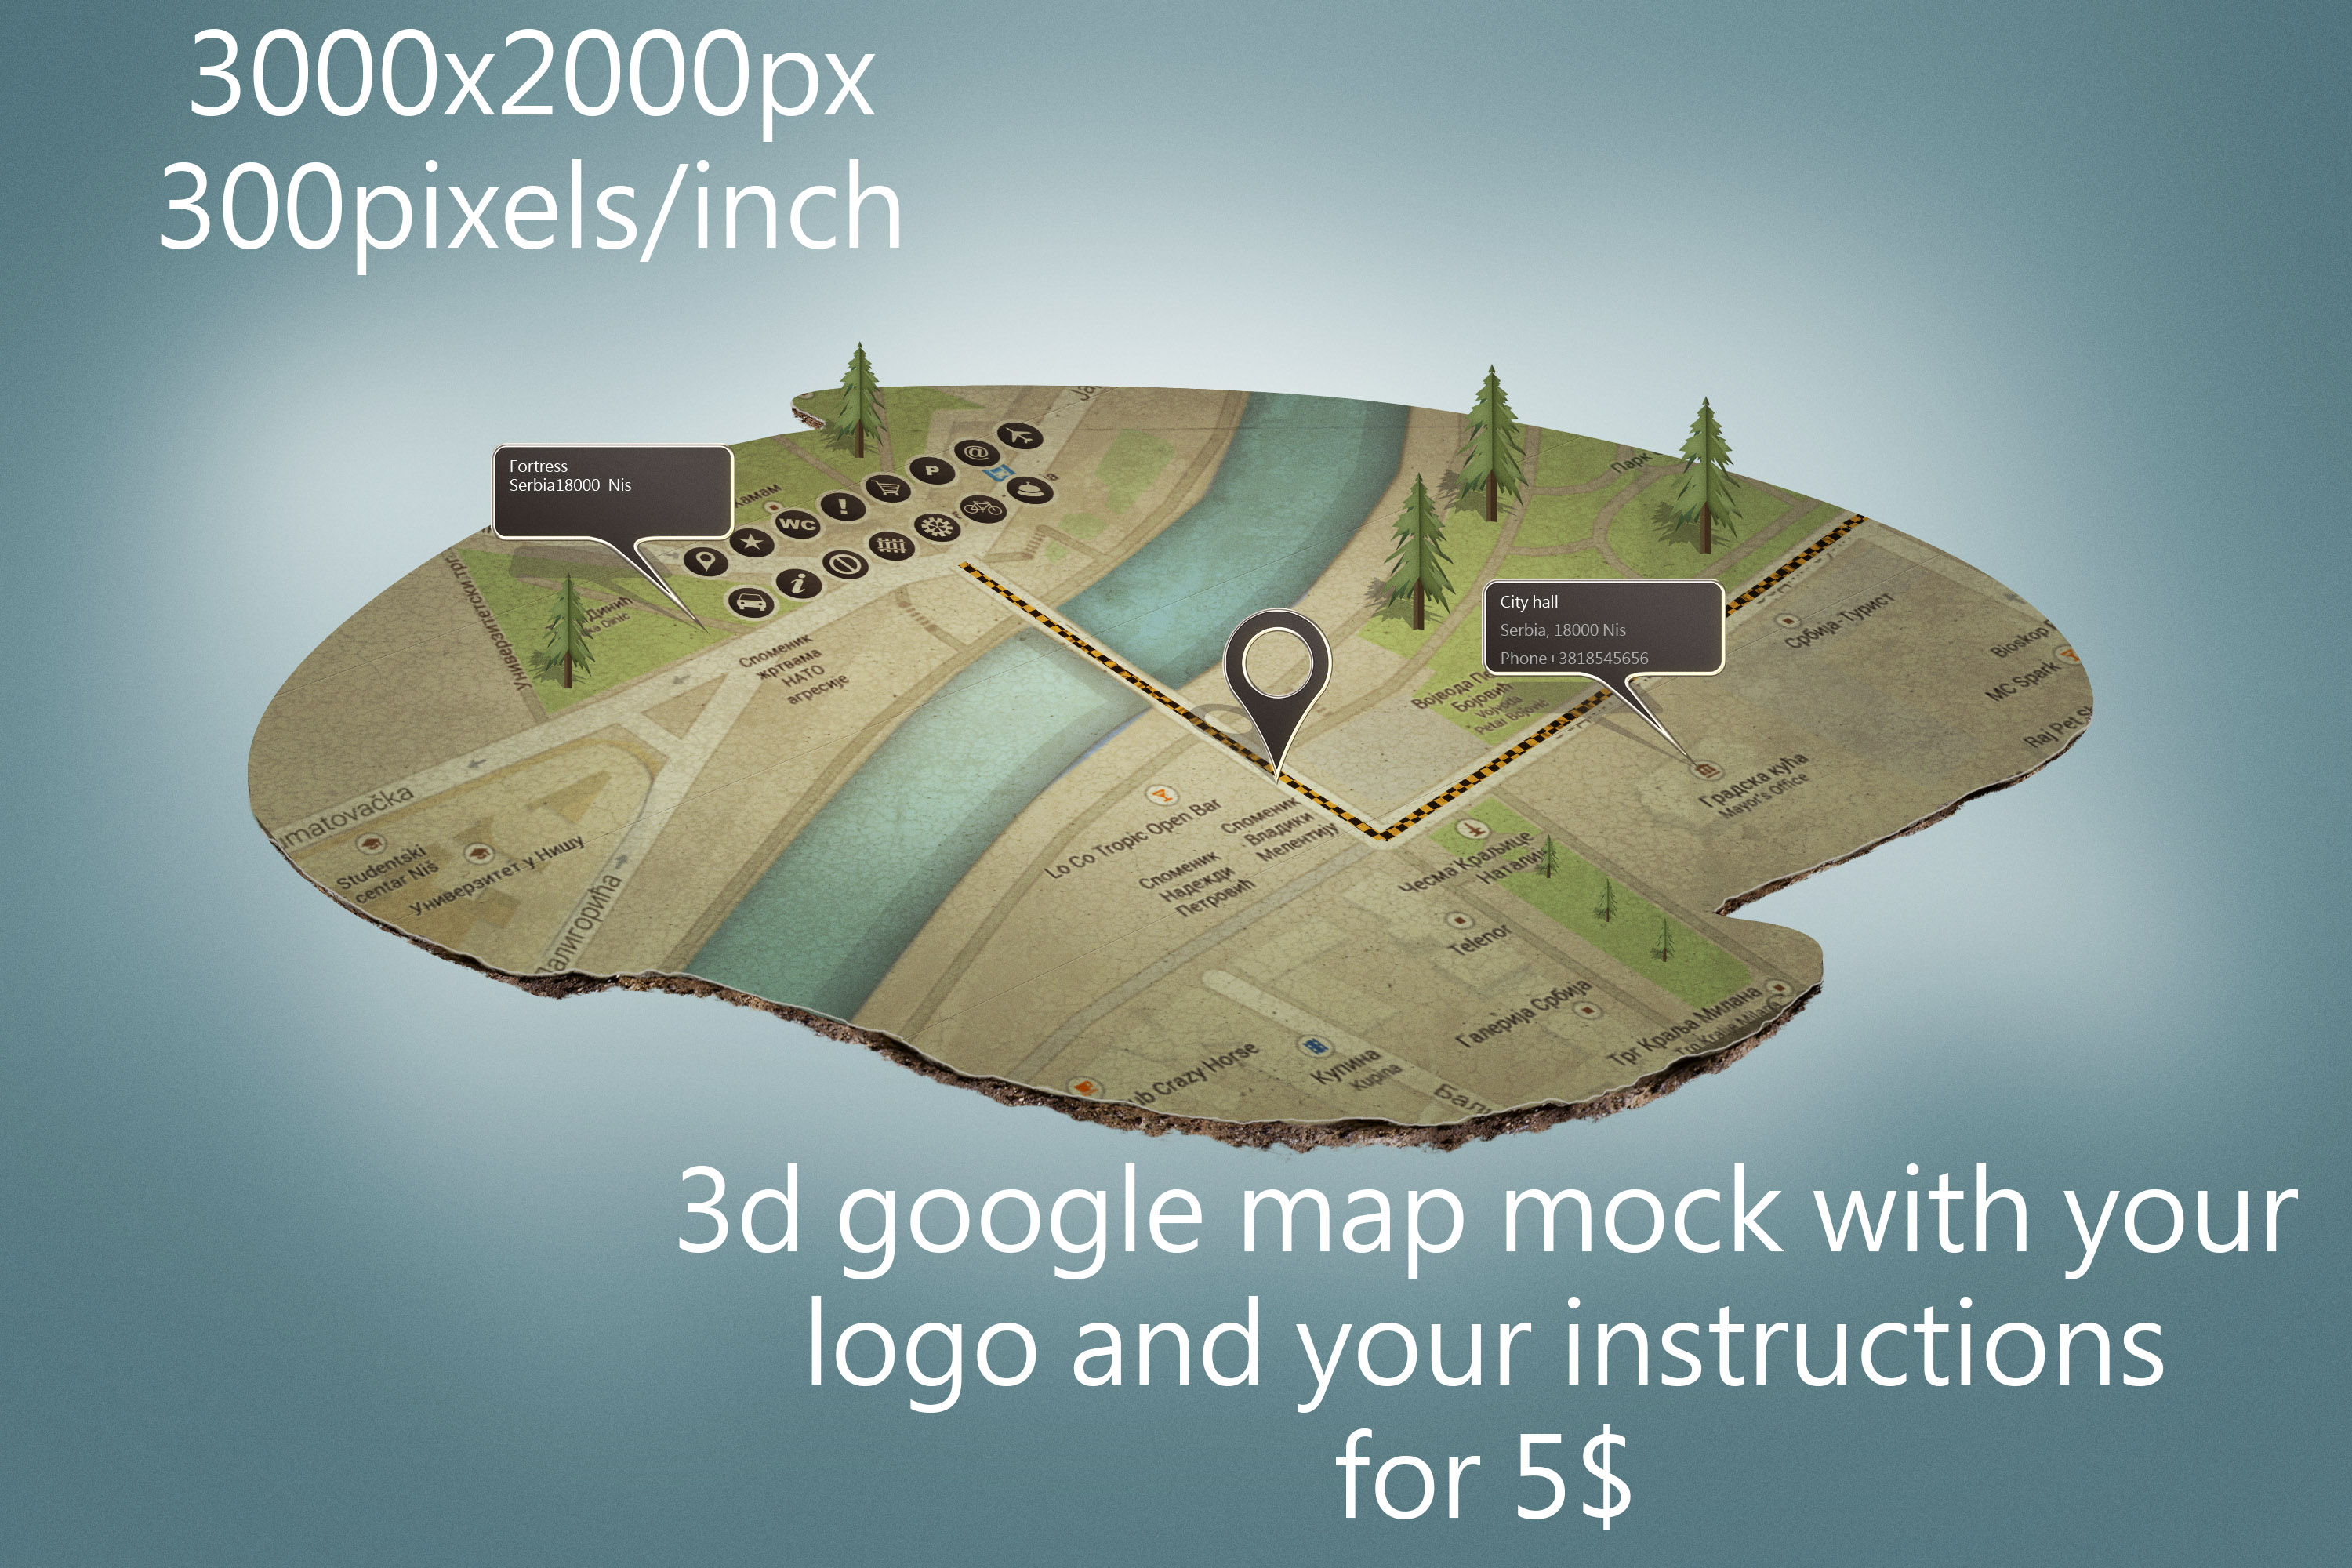 make 3d google map mock up with your logo